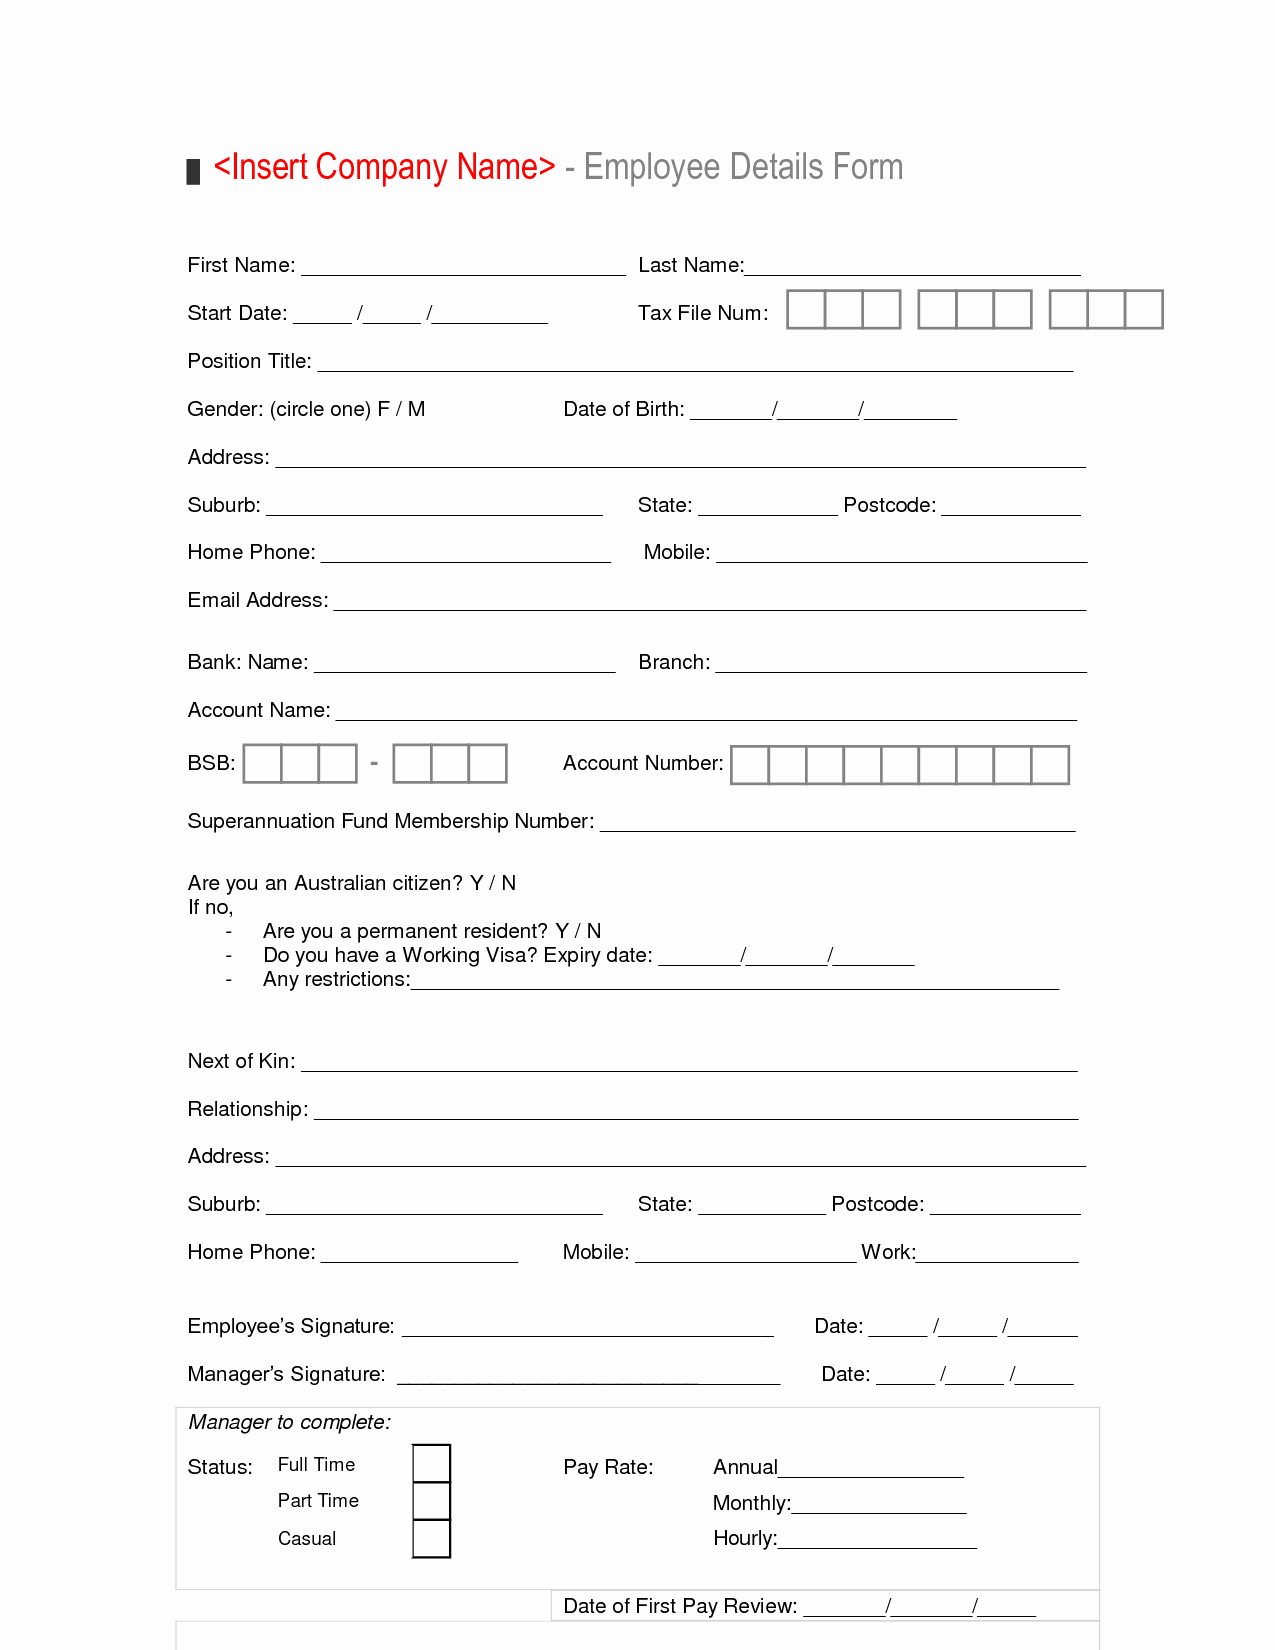 New Hire forms Template New New Hire Employee Details form Template Sample Vlashed